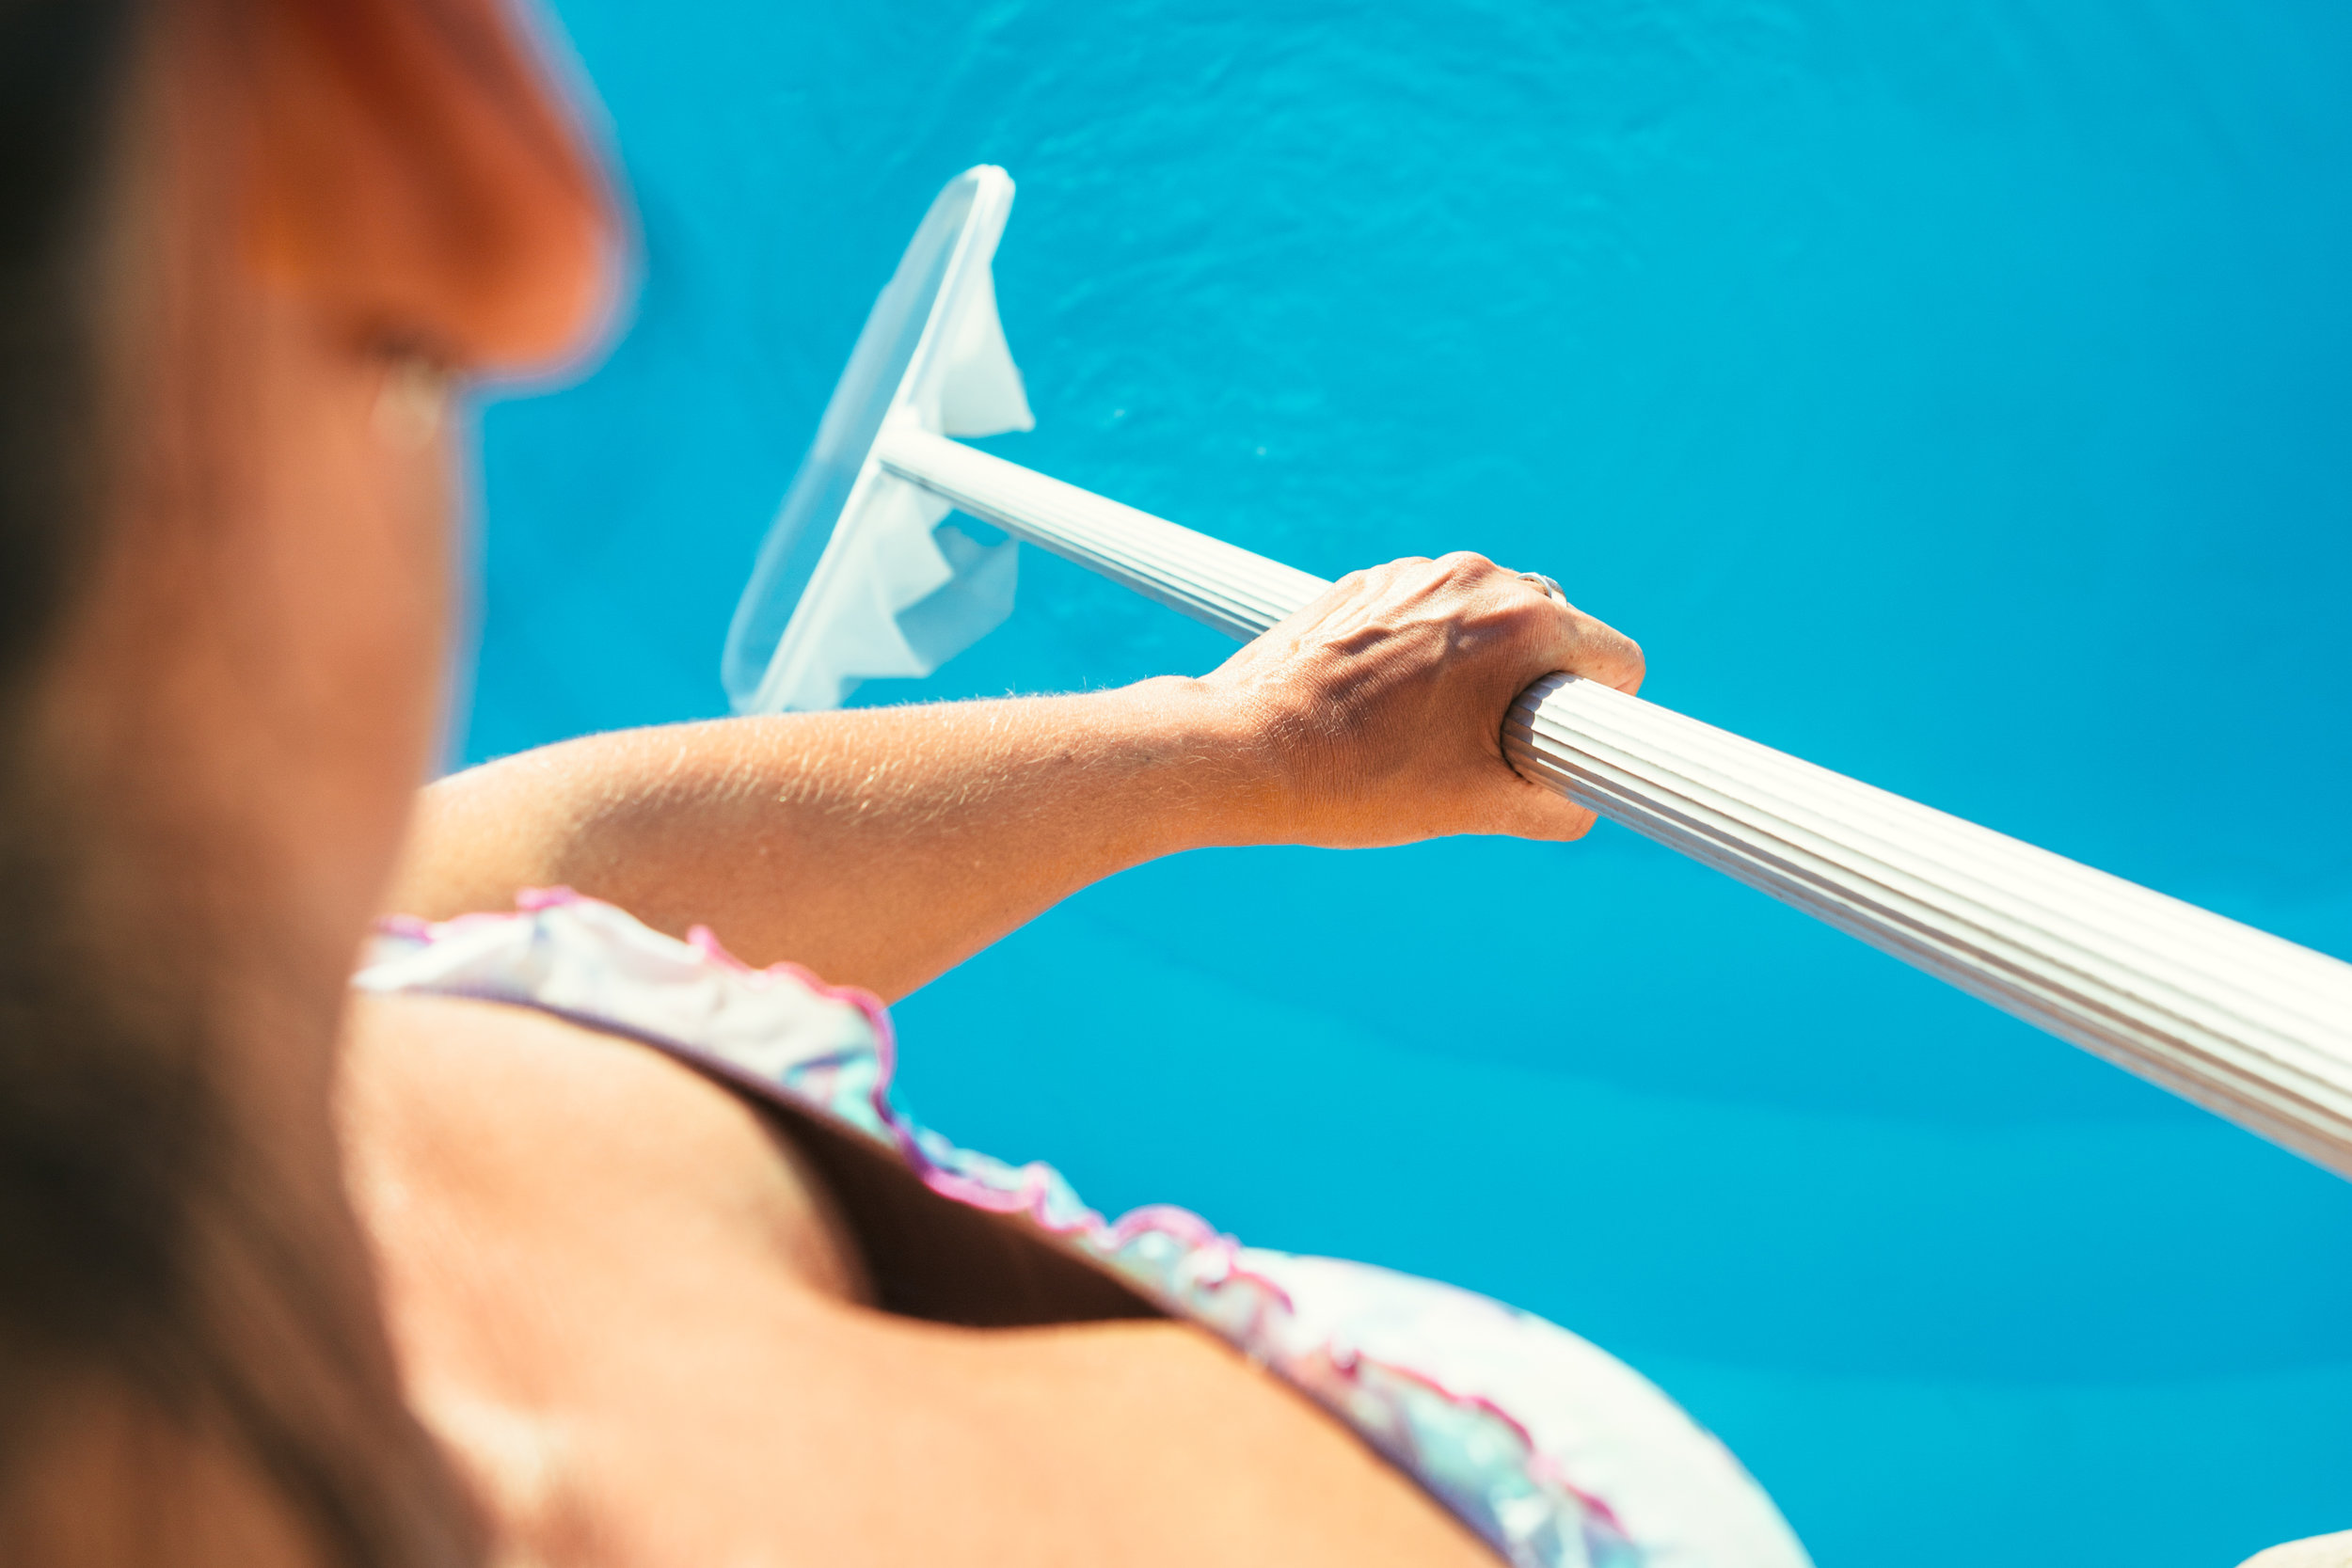 A cropped photograph of a woman using a skimmer net in her pool.